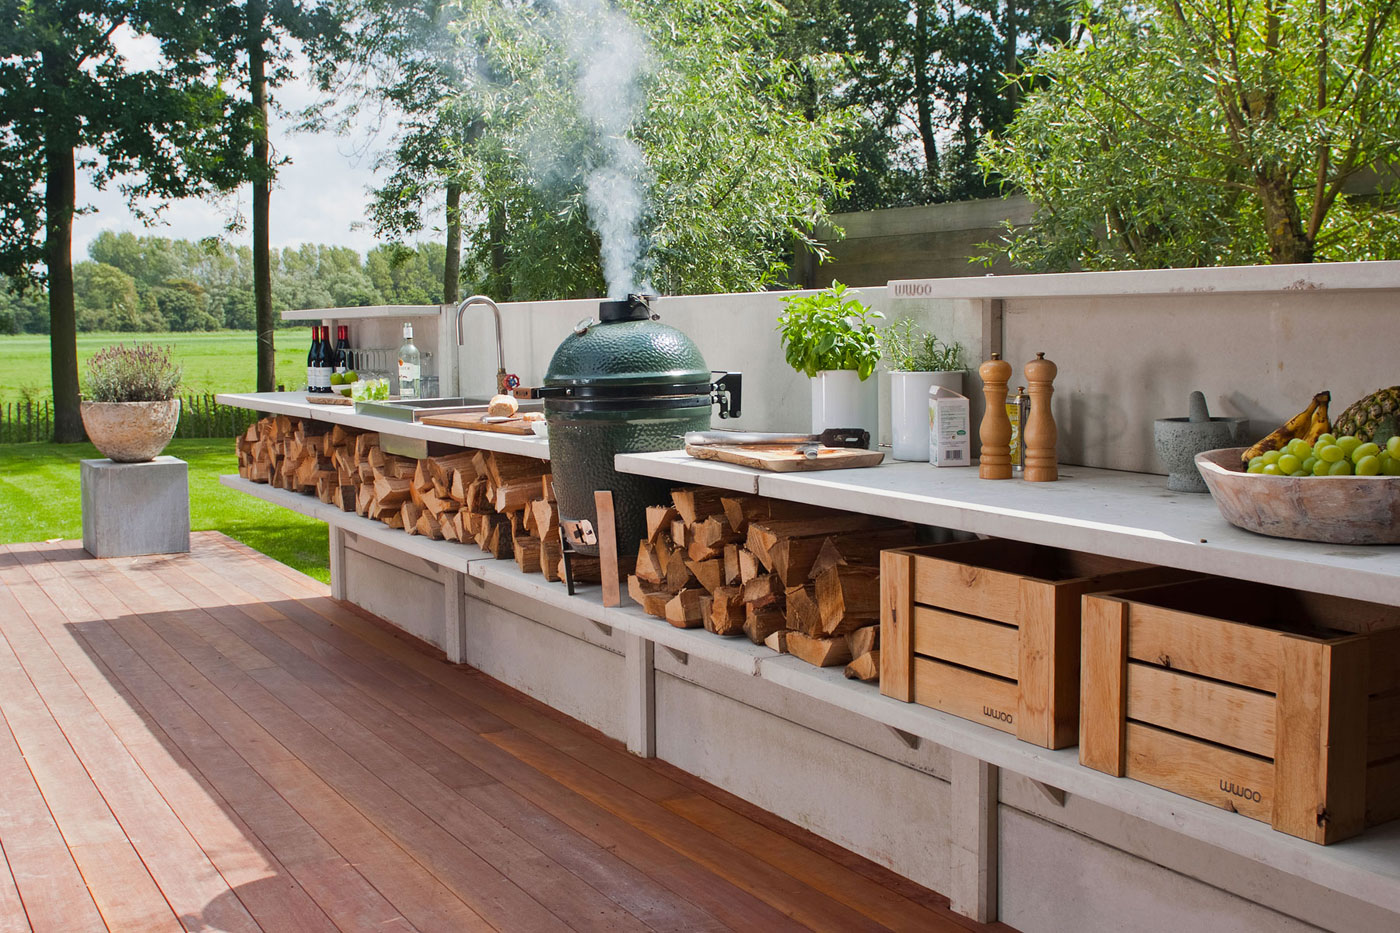 15 Best Outdoor Kitchen Ideas And Designs   Pictures Of Beautiful Outdoor  Kitchens Design Ideas